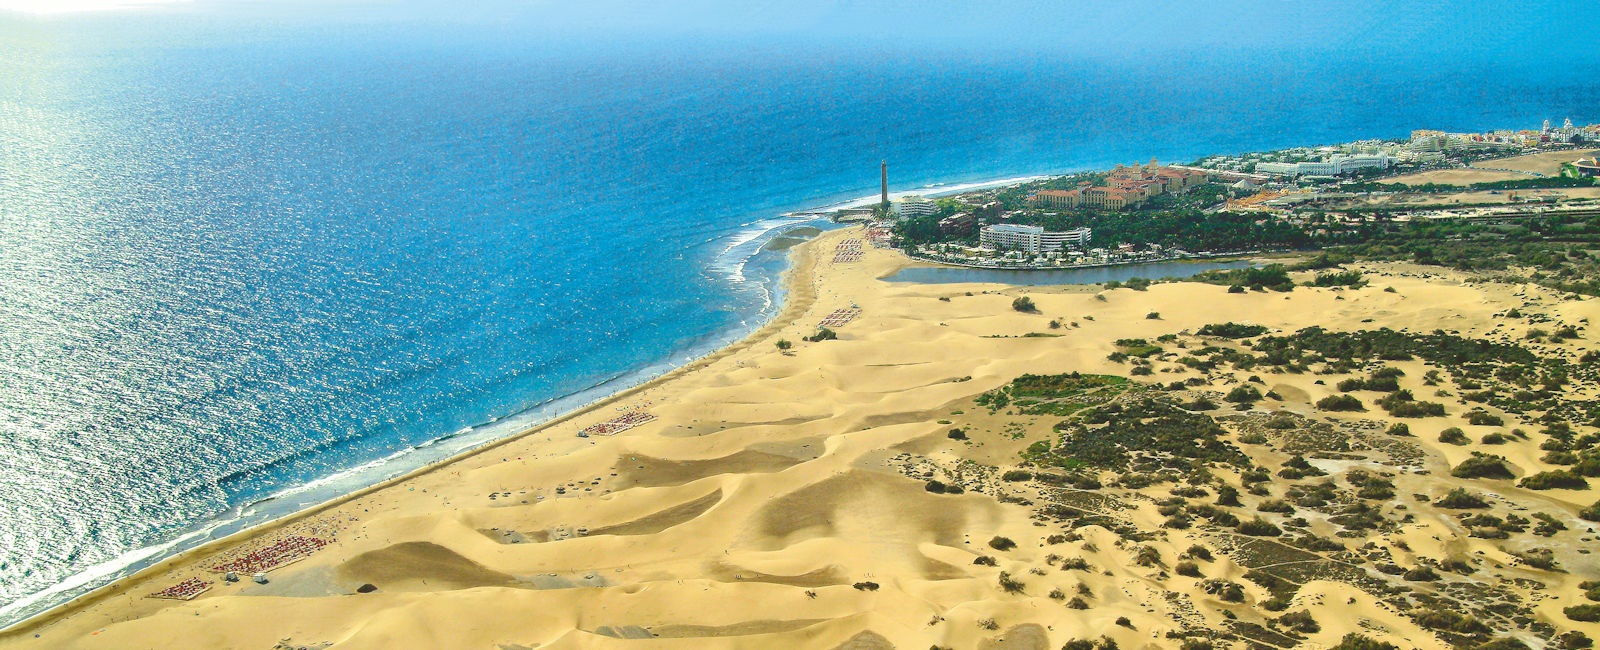 Luxury Maspalomas Holidays